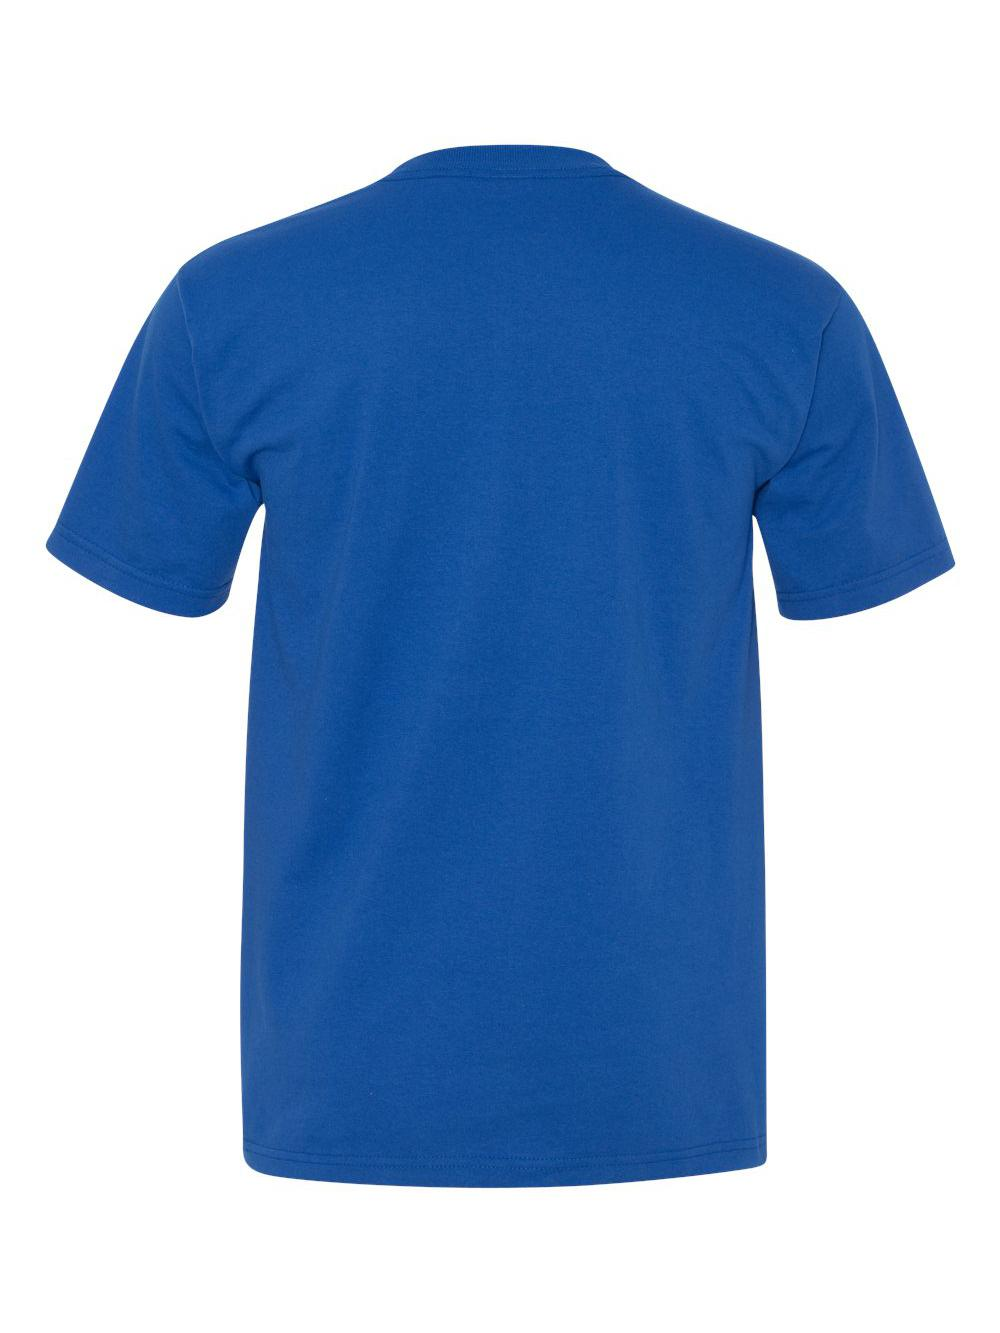 Bayside-Union-Made-Short-Sleeve-T-Shirt-with-a-Pocket-3015 thumbnail 28